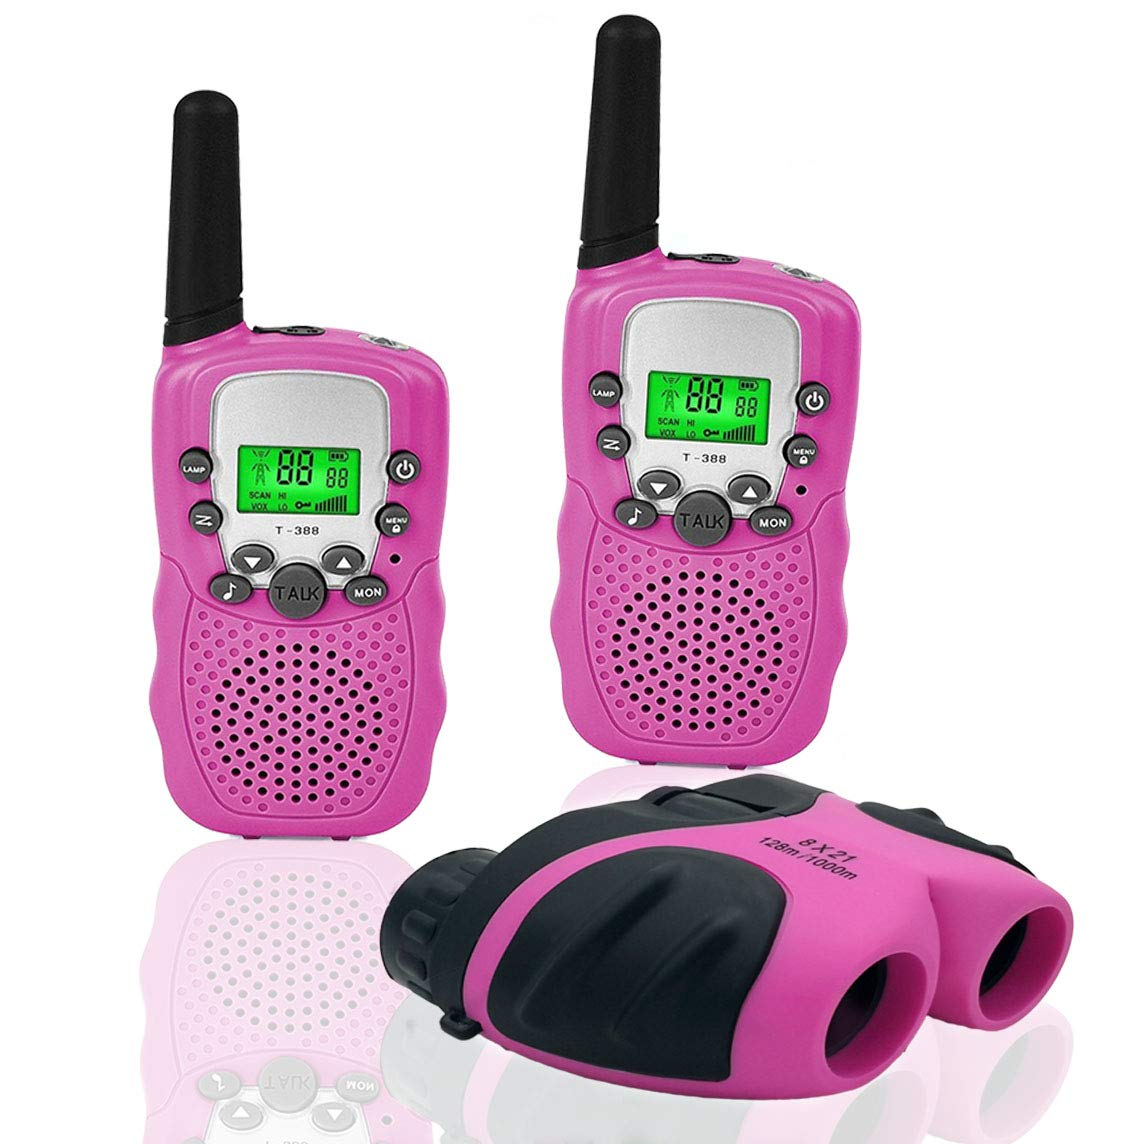 JRD&BS WINL Outdoor Toys for 3-12 Year Old Boys, Walkie Talkies for Kids Toys for 3-12 Year Old Girls,Kids Binoulars for 4-9 Year Old Girl Birthday Gift ,1 Set(Pink)